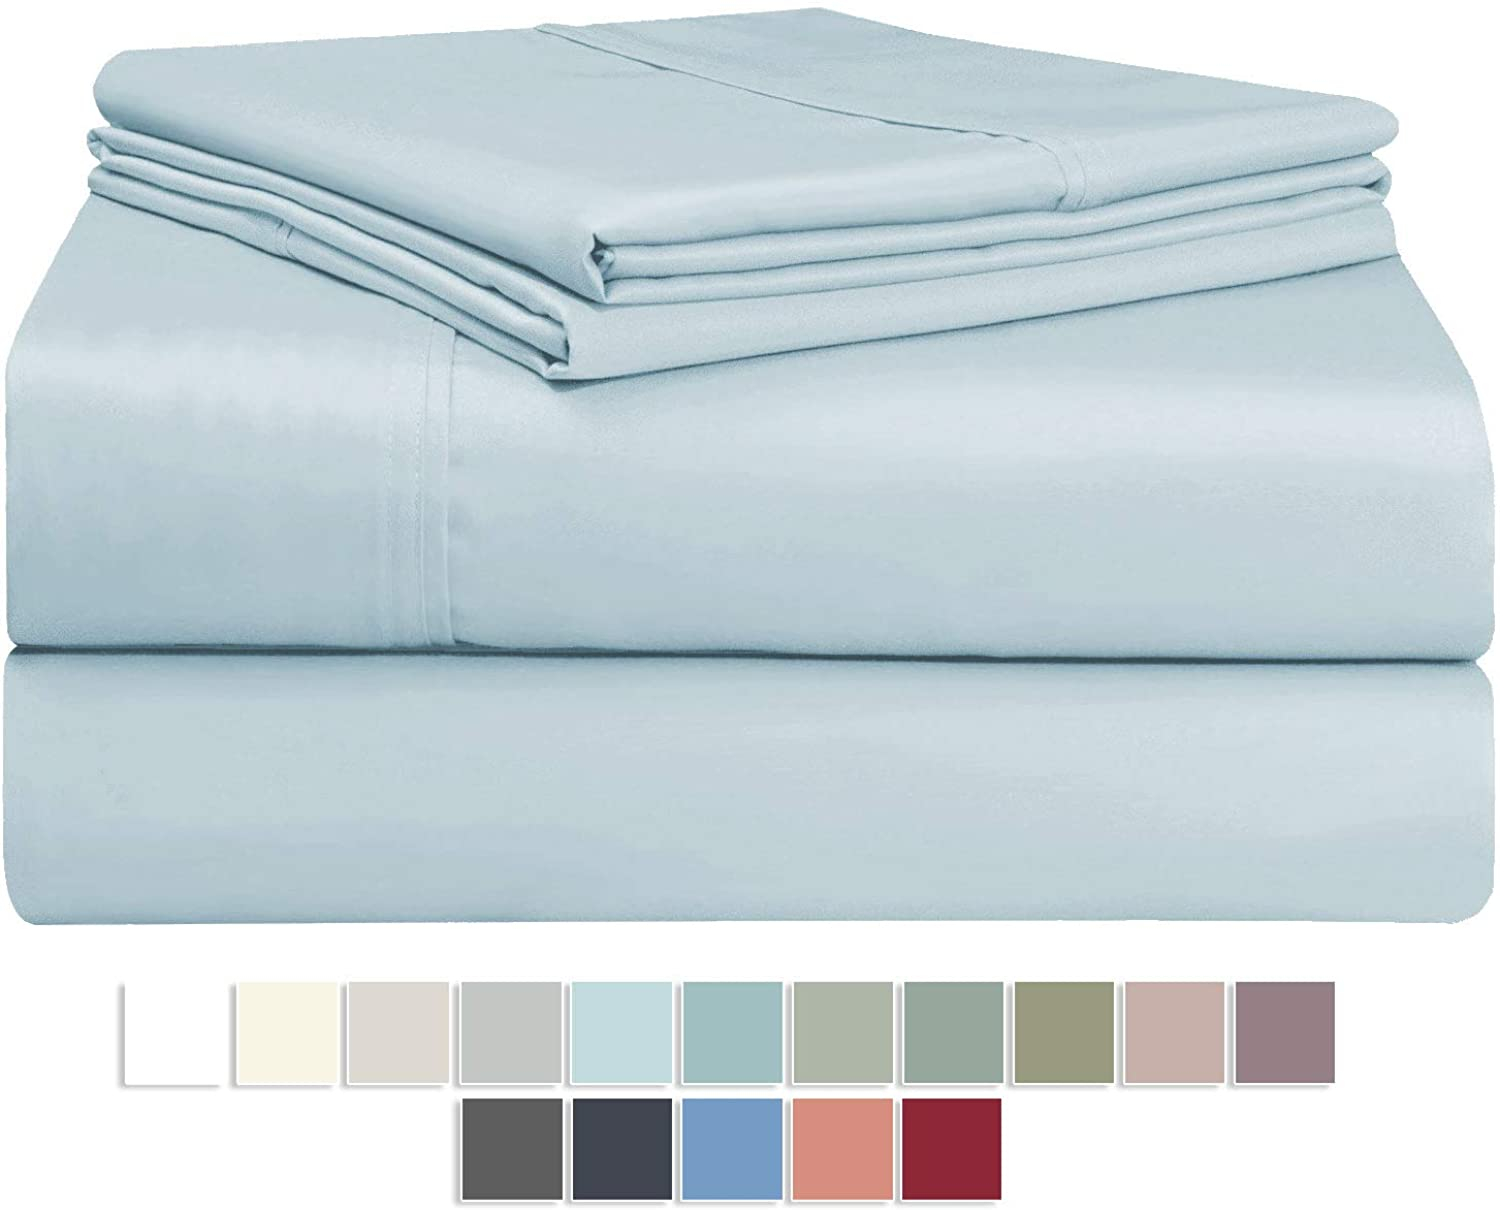 400 Thread Count Light bluee 6 Piece King Sheets Set Includes 2 Bonus Pillow Cases, 100% Long Staple Cotton Soft Sateen Weave Bed Sheets with Deep Pockets, Value Pack 6 pc Cotton Sheets King Baby bluee